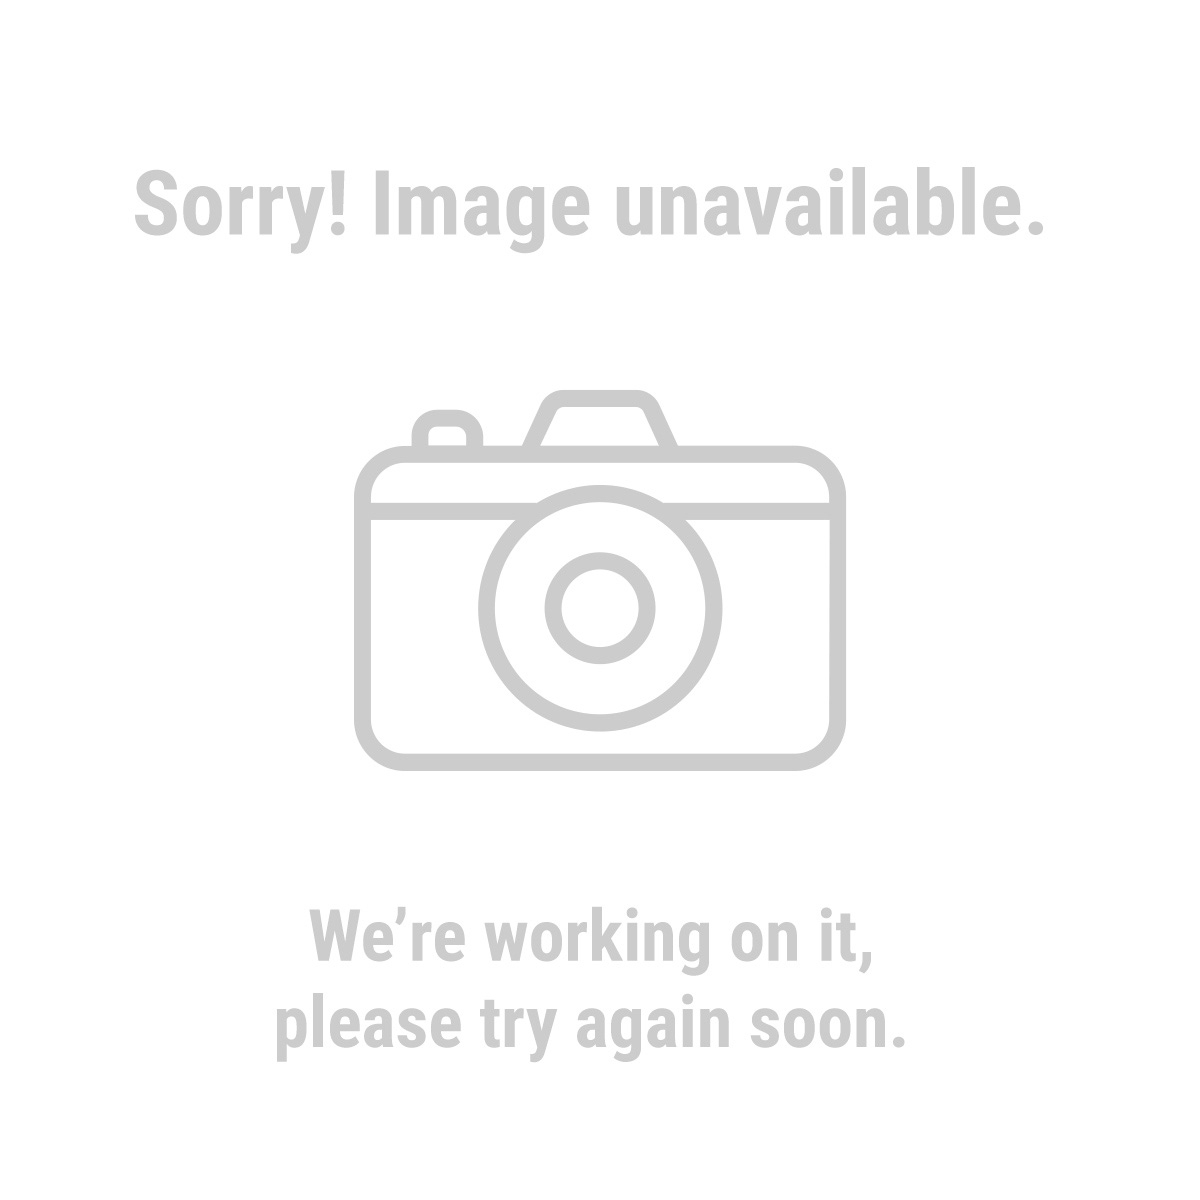 Western Safety 97010 Mesh Face Shield